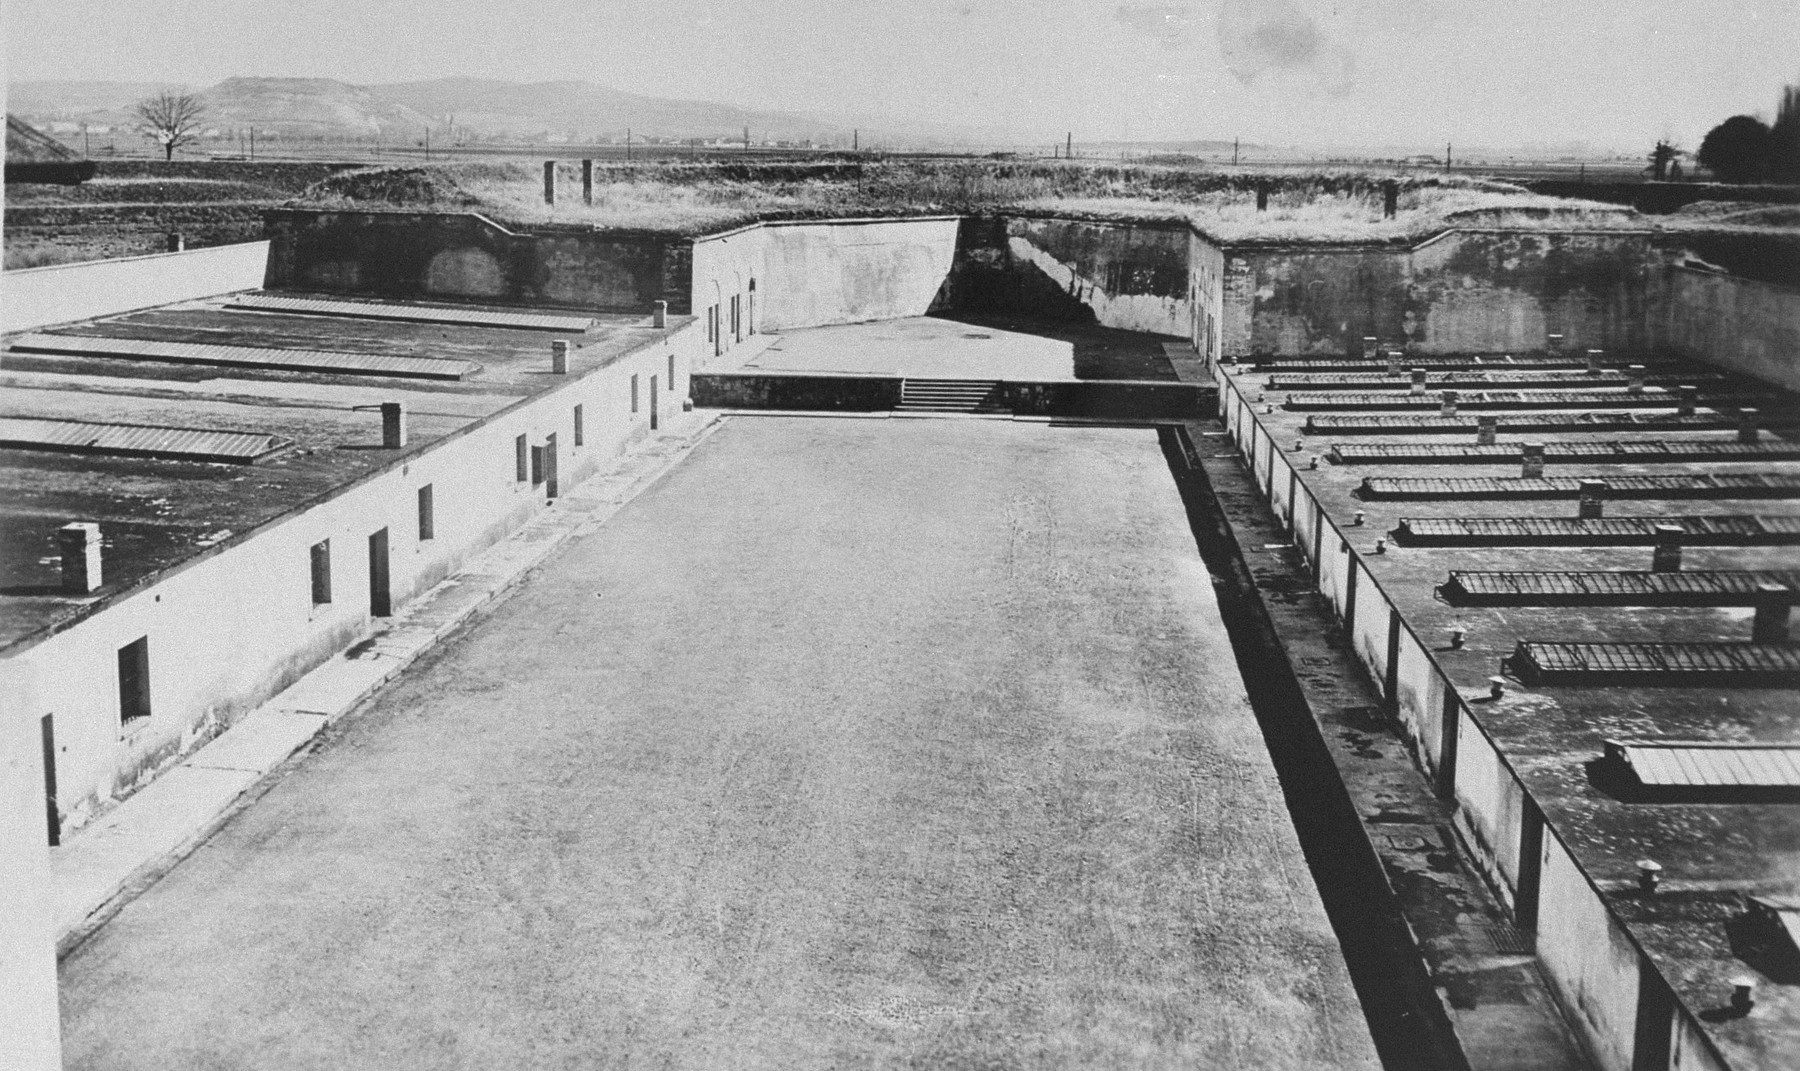 View of part of the fortification called the Ravelin and the Gestapo prison courtyard in the Small Fortress at Theresienstadt.